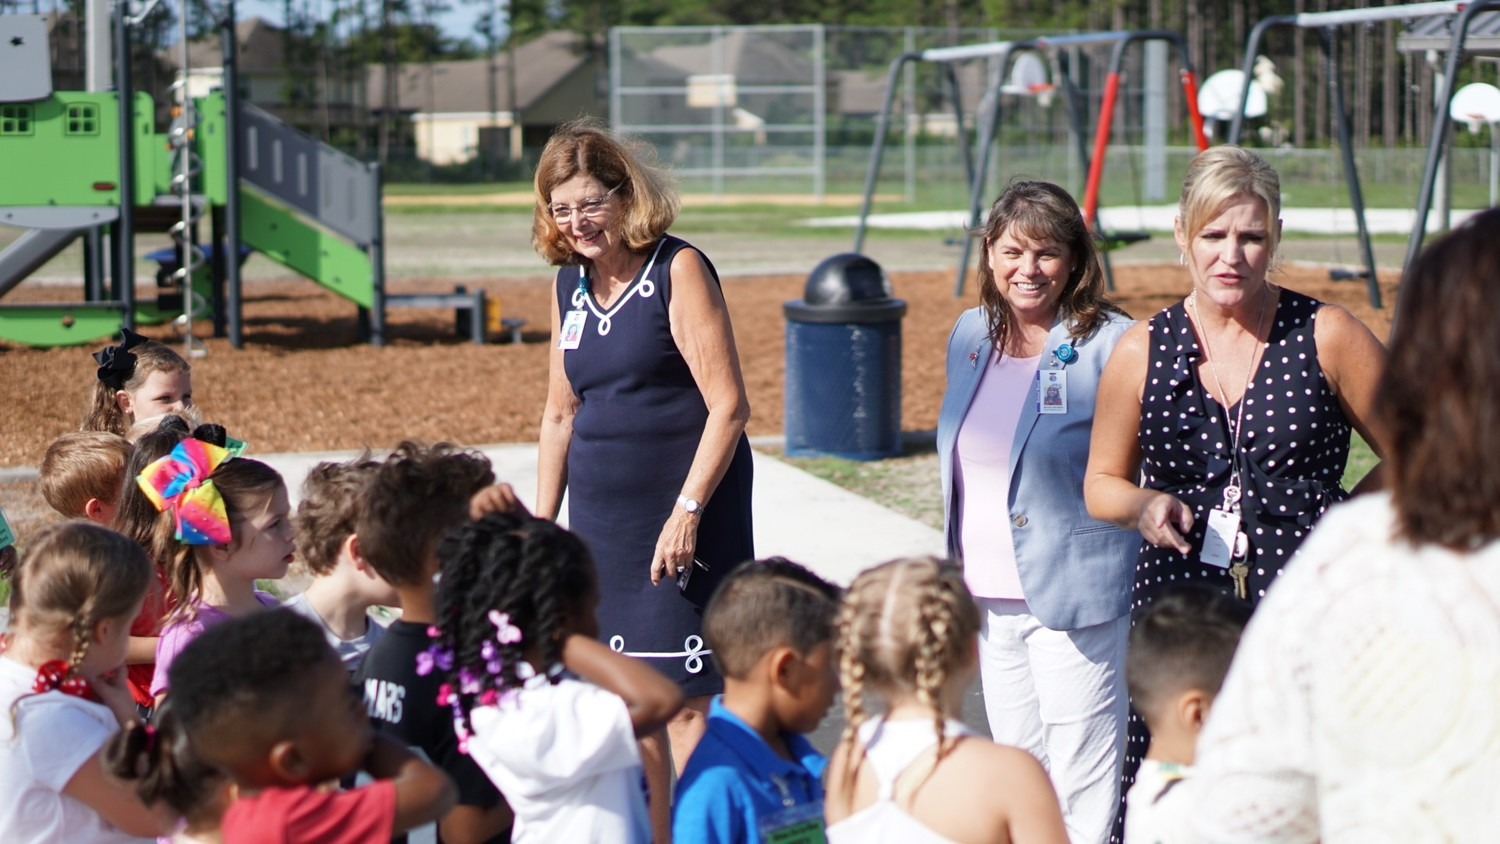 Clay County School Board Chairman Carol Studdard, center, and Vice Chairman Janice Kerekes join Principal Tracy McLaughlin at Discovery Oaks Elementary School's first day. The school is the district's first STEAM school in that it adds the Arts to Science, Technology, Engineering and Math as key pillars of its curriculum.